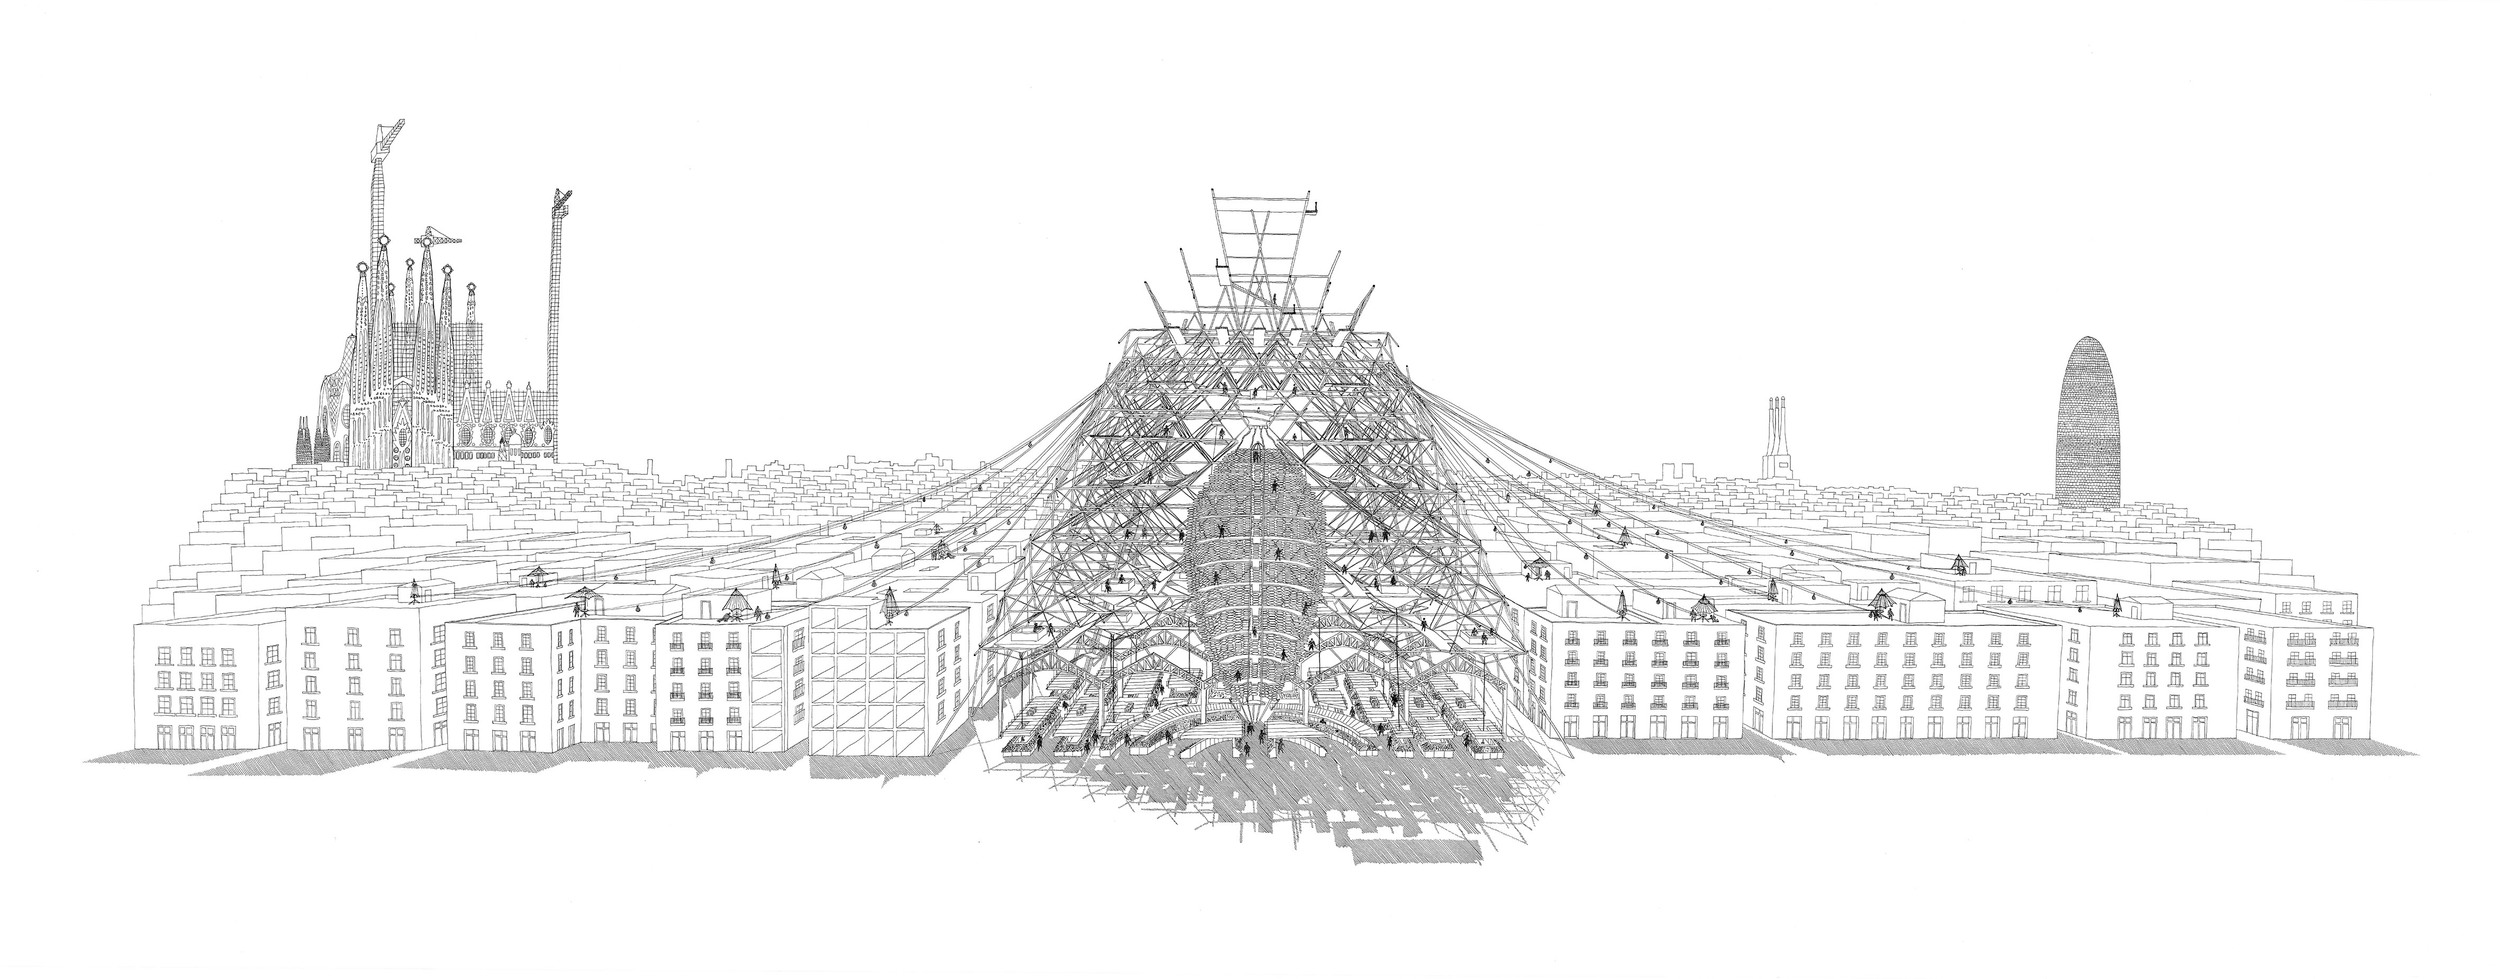 Christian Brink, 'The Food Temple - A Sustainable Eating and Dining Infrastructure that Establishes a Symbiosis between Insects and the City'.